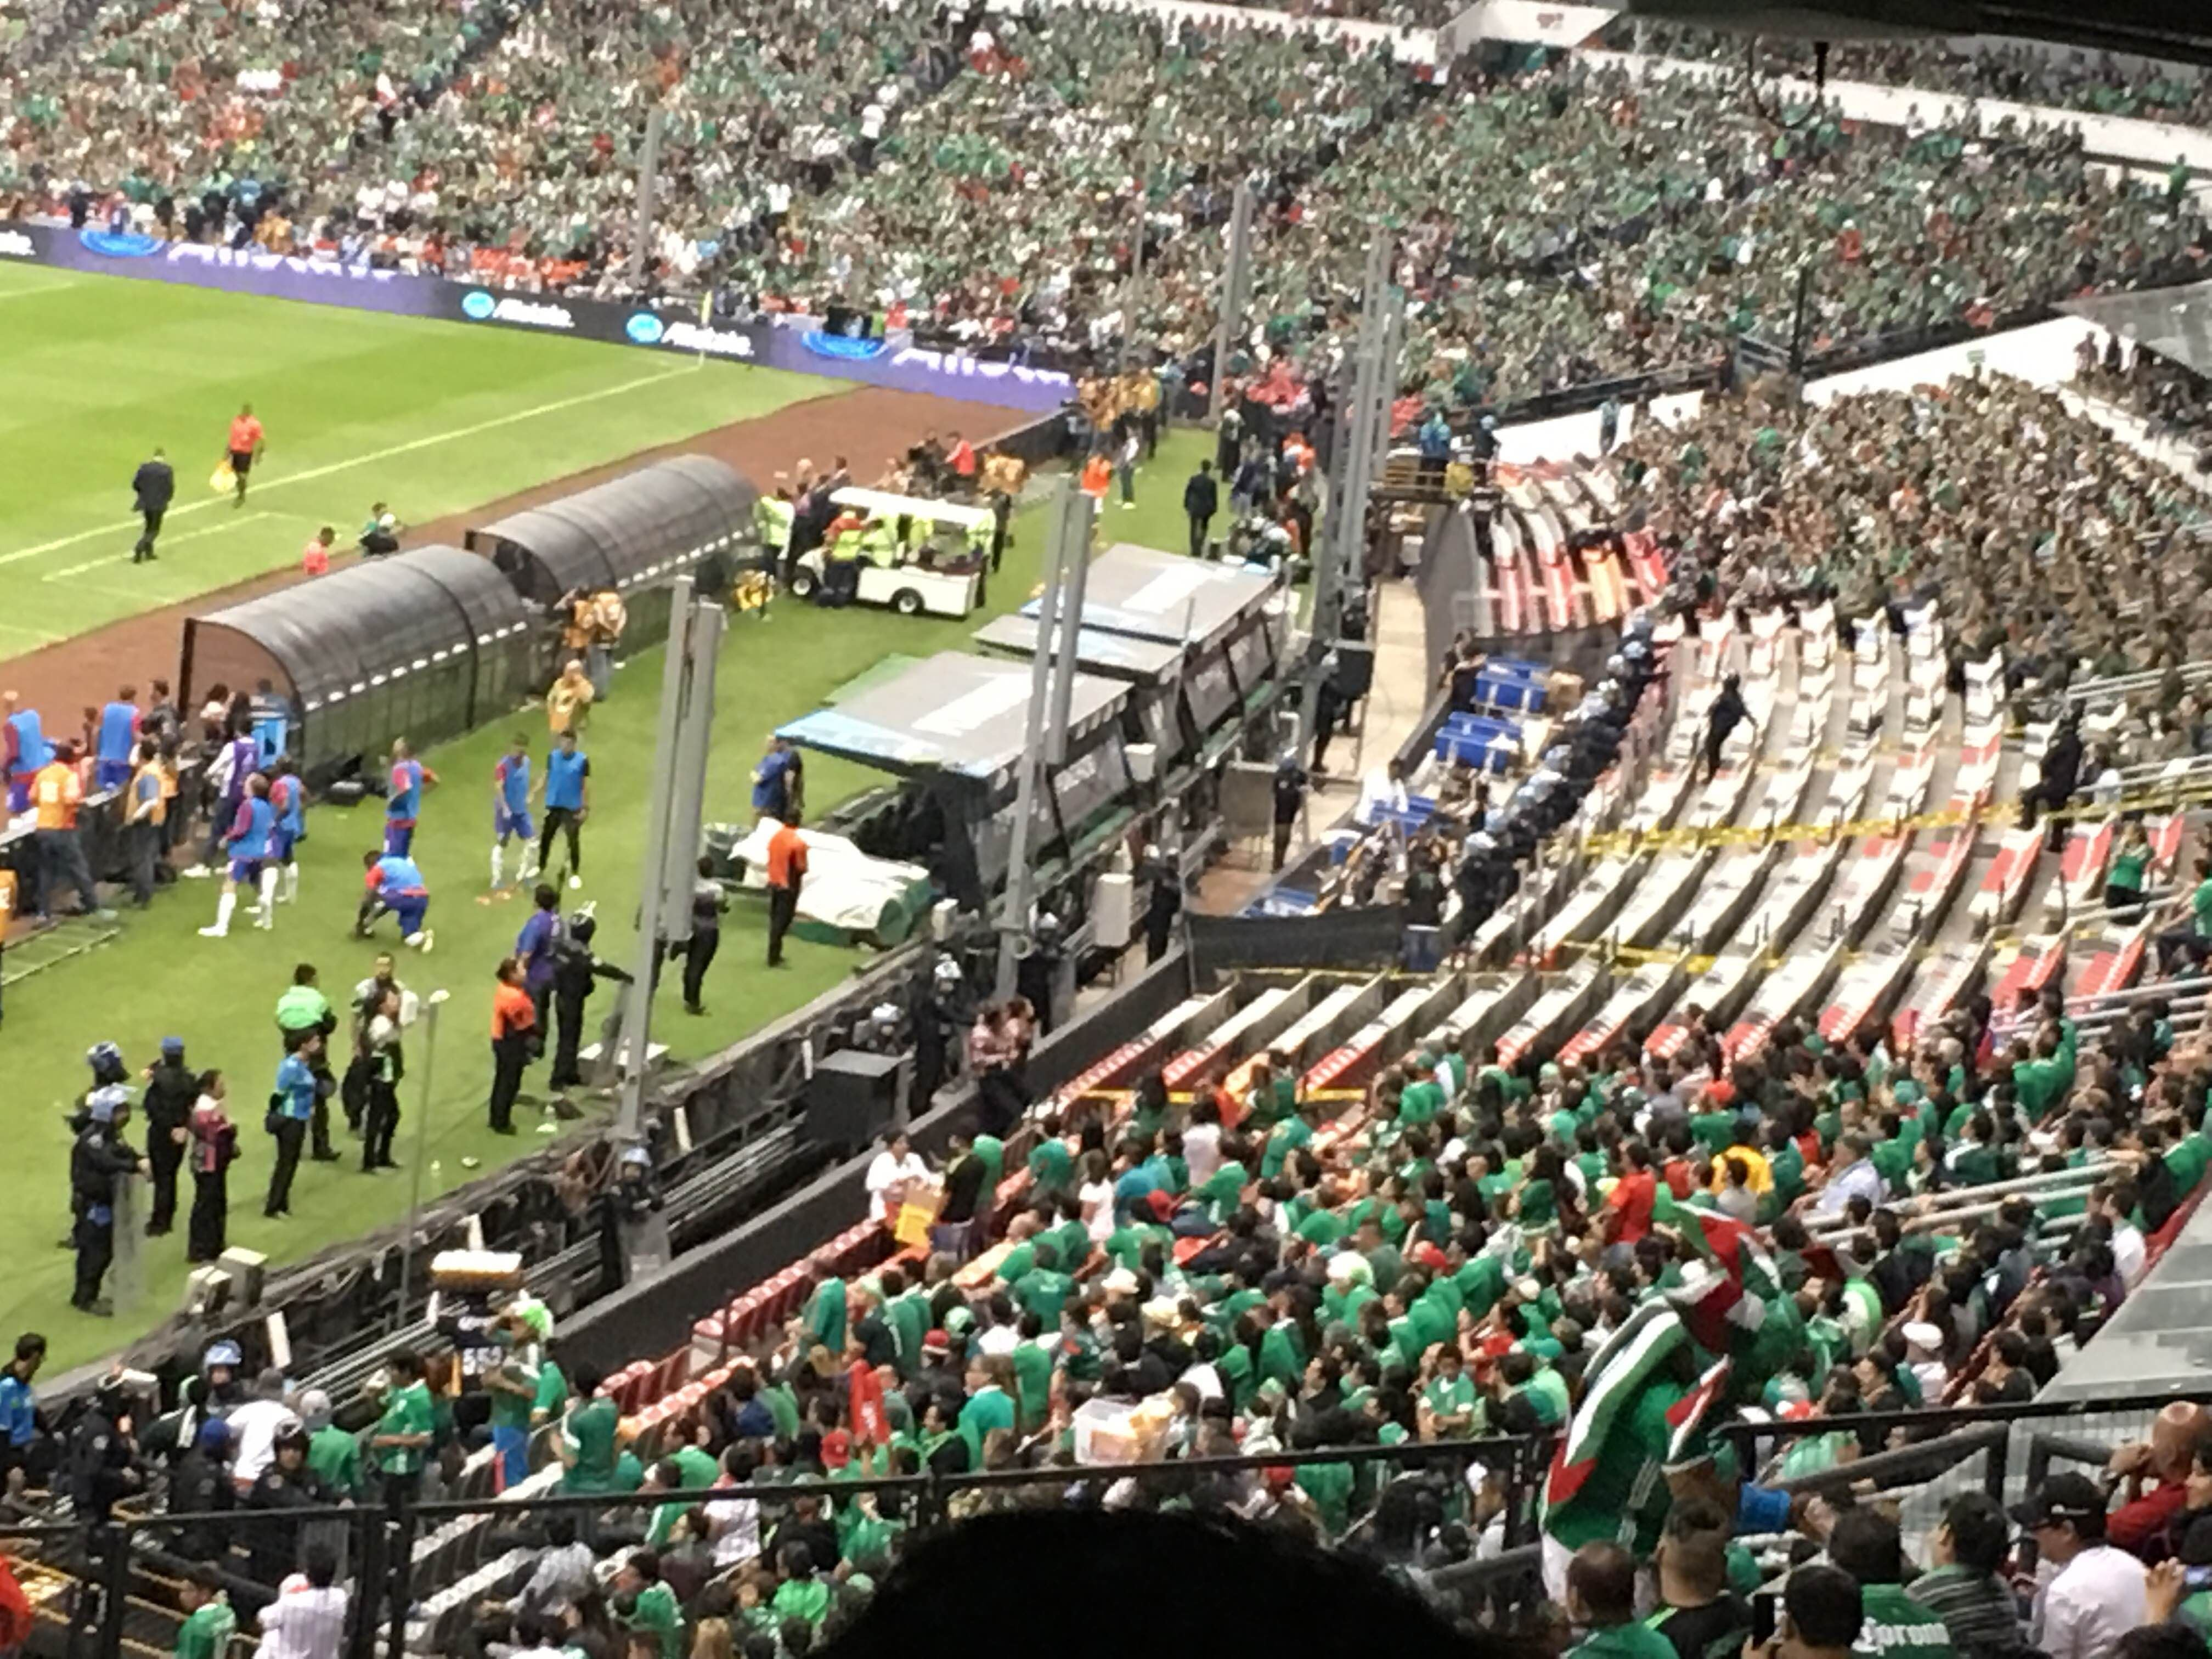 Audiencia en Estadio Azteca